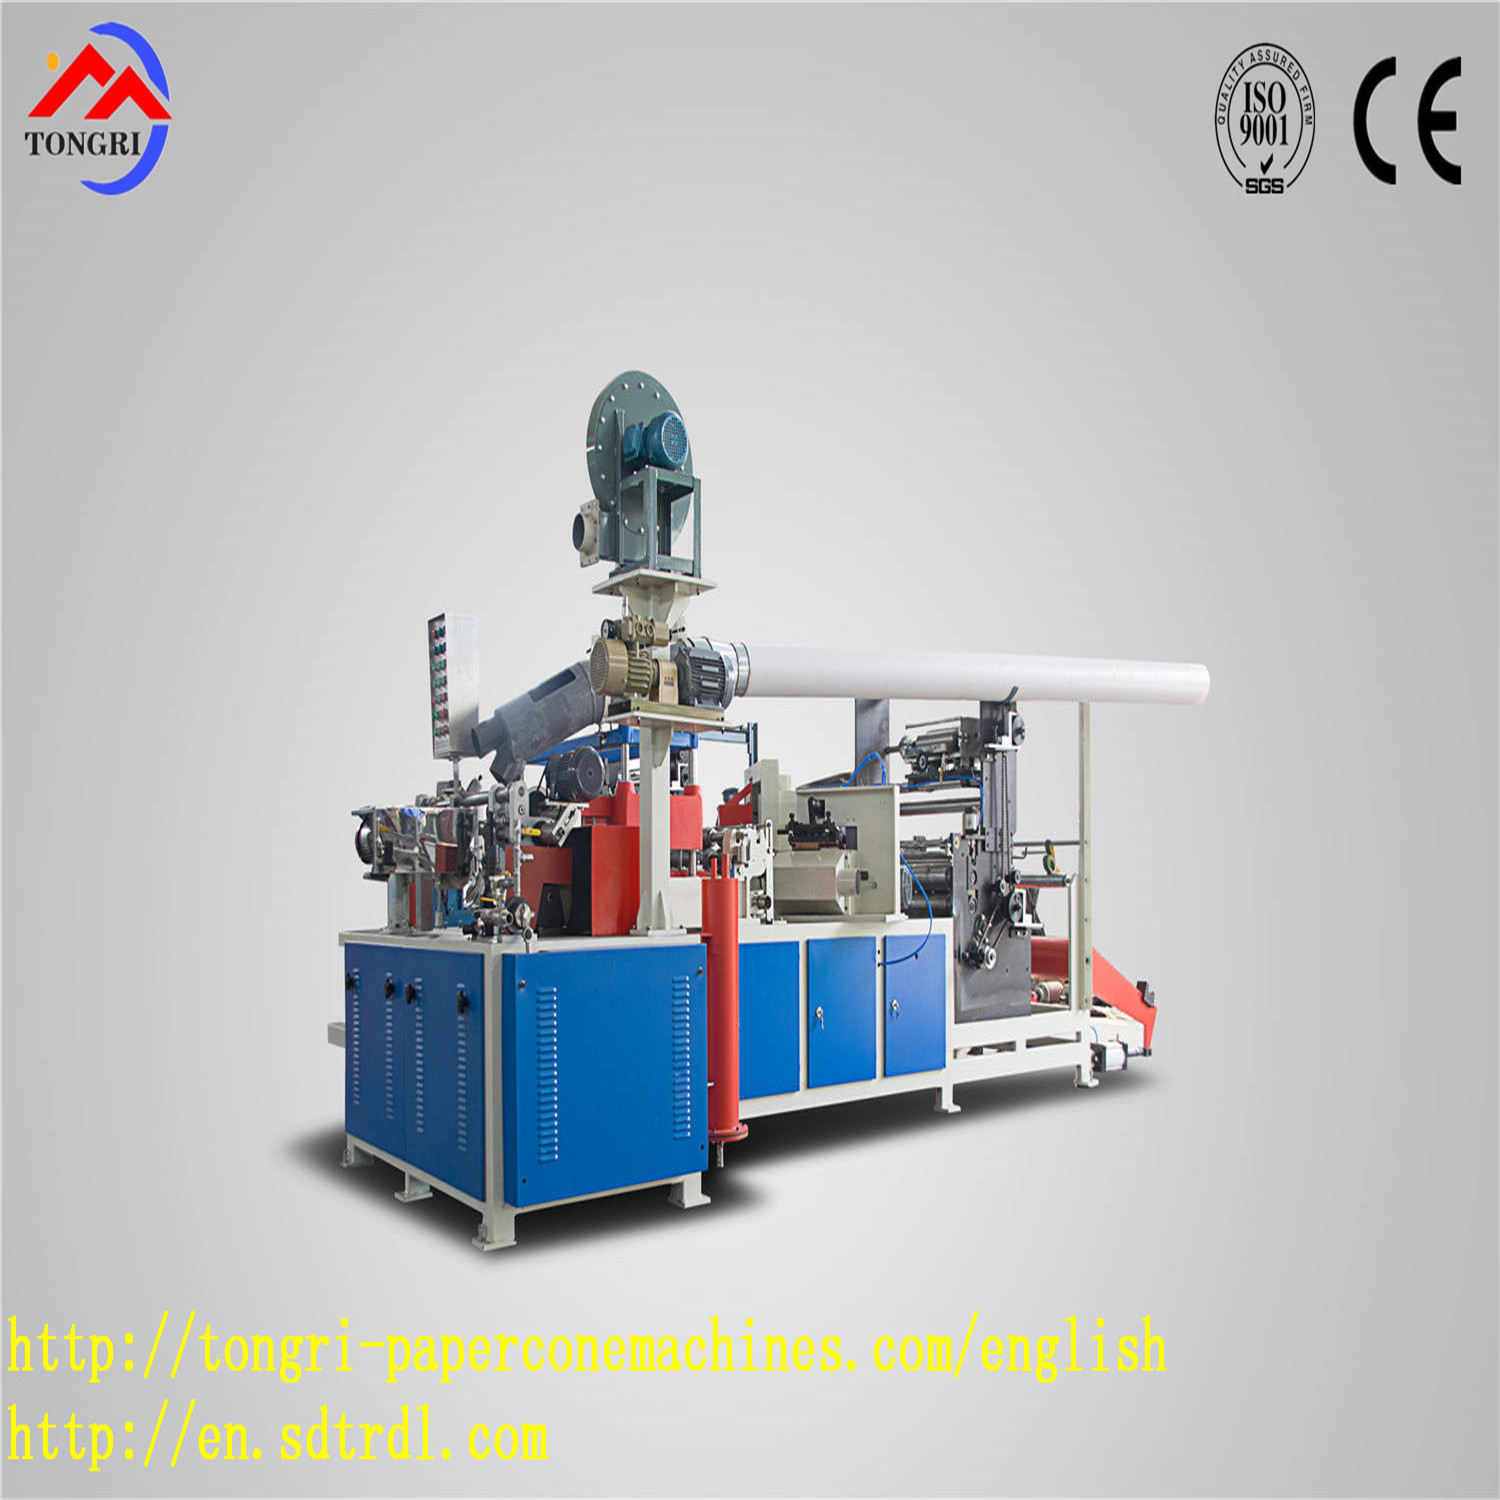 TRZ-2012 full automatic conical paper tube production line reeling part